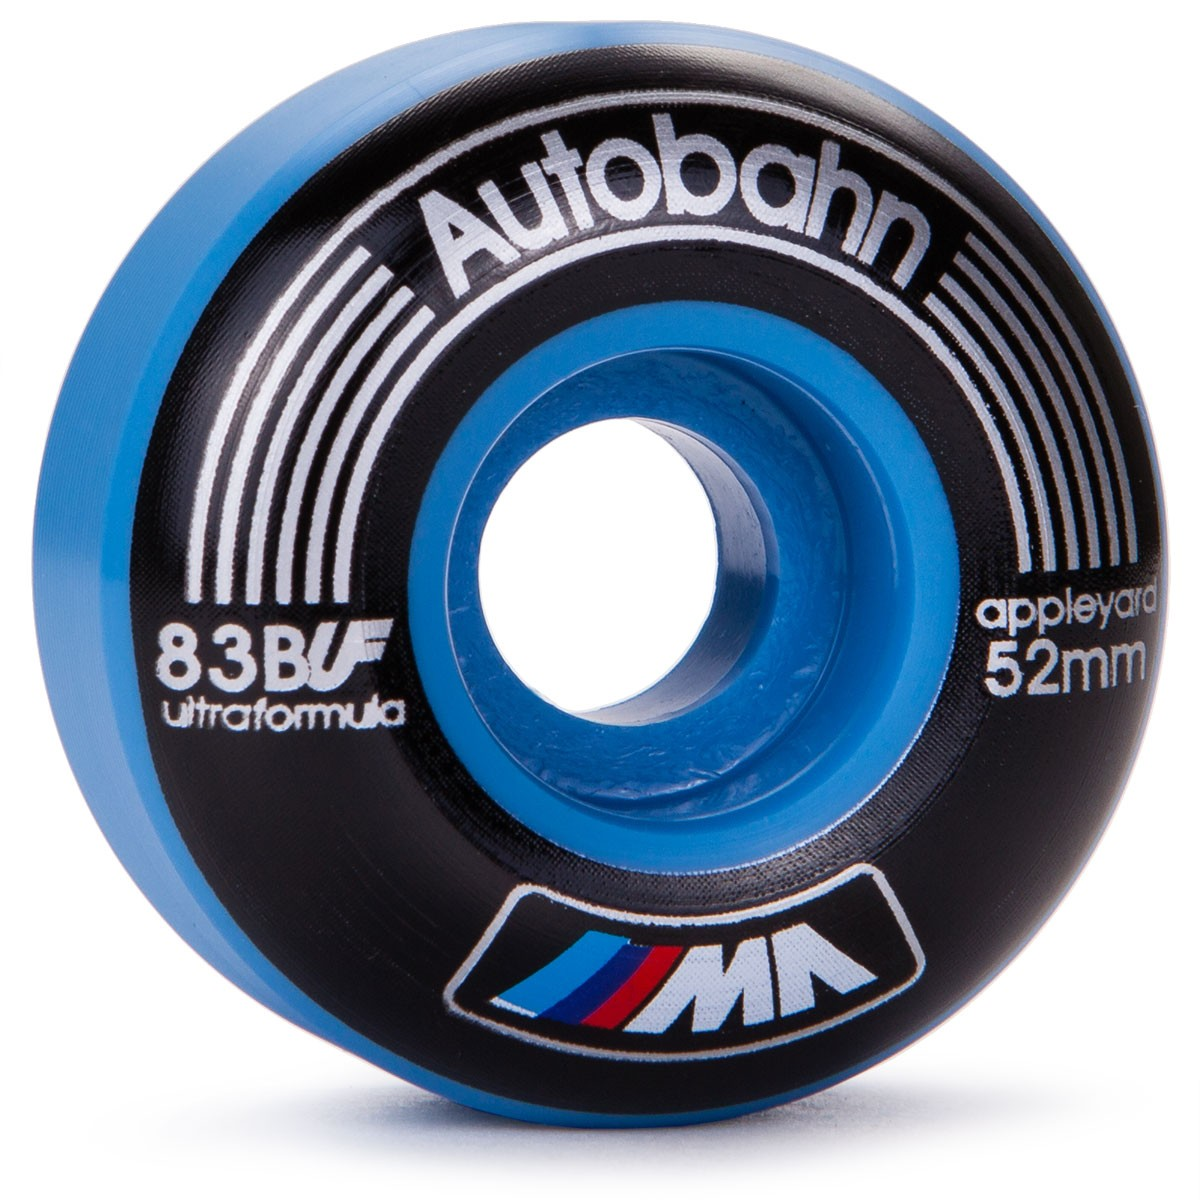 autobahn appleyard ultimate skateboard wheels 52mm 83b ccs com